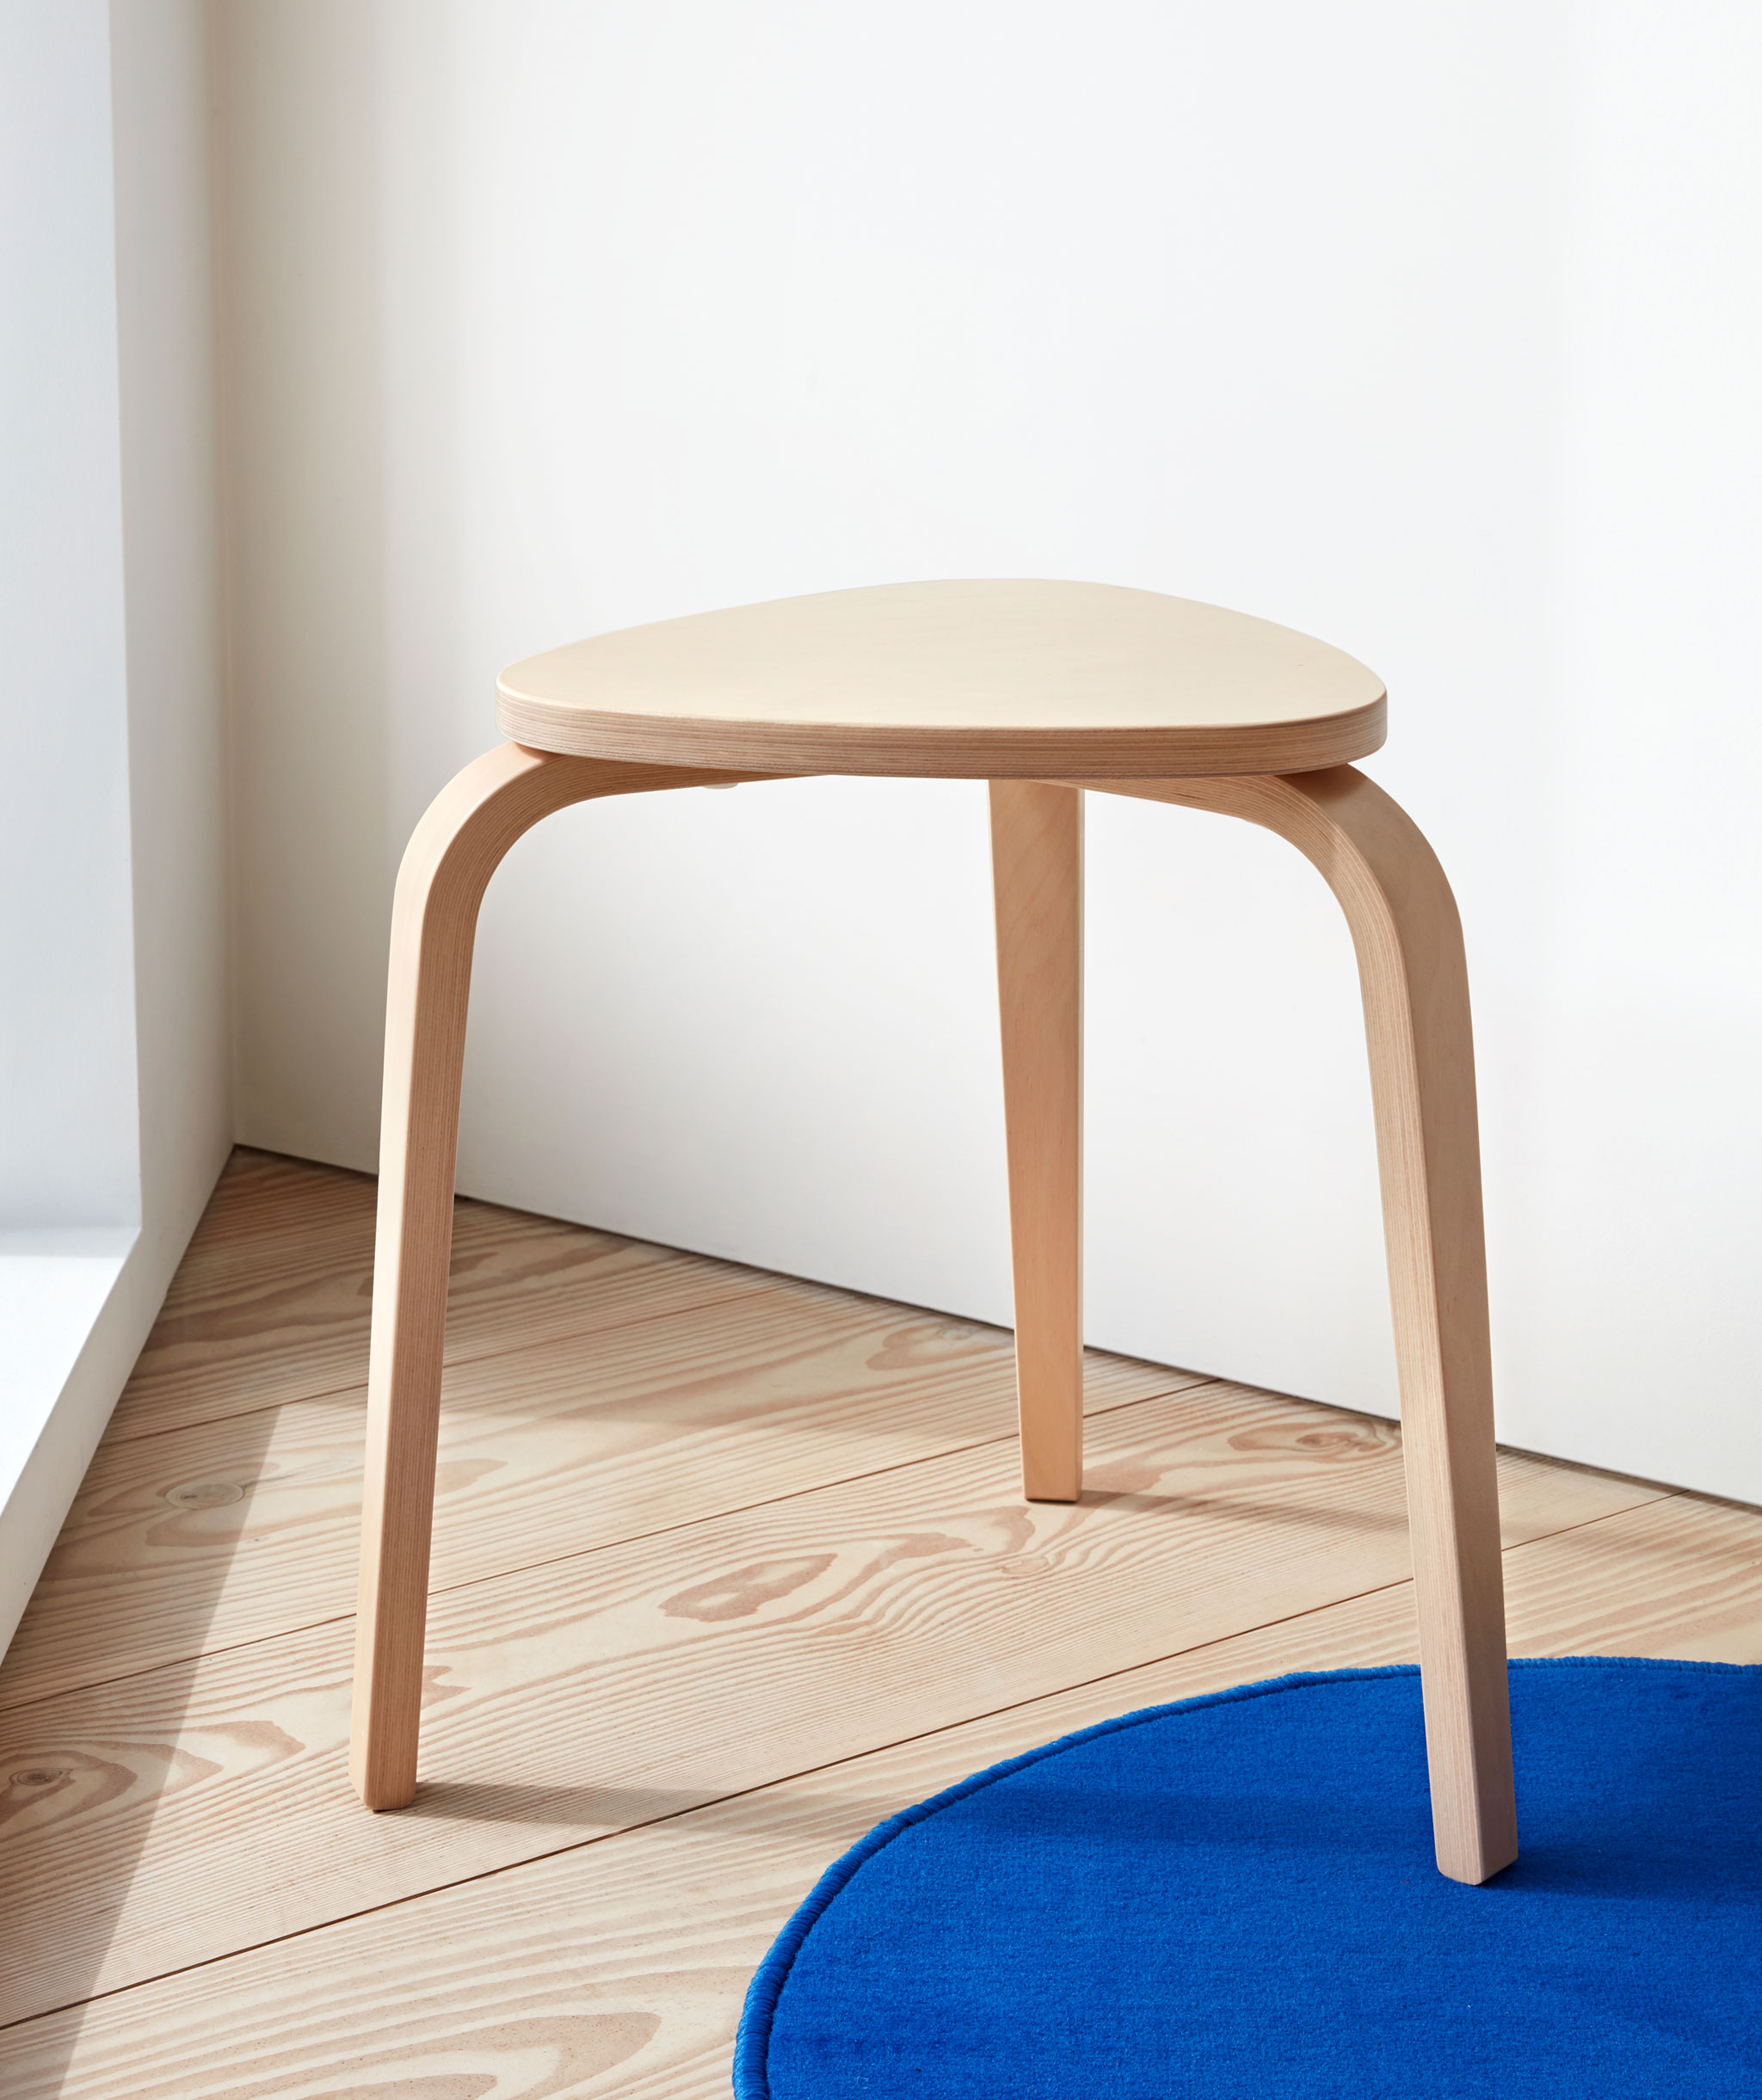 Three-legged, light-wood stool standing in a sharp-angle corner on a wooden floor, one leg on a small blue rug.